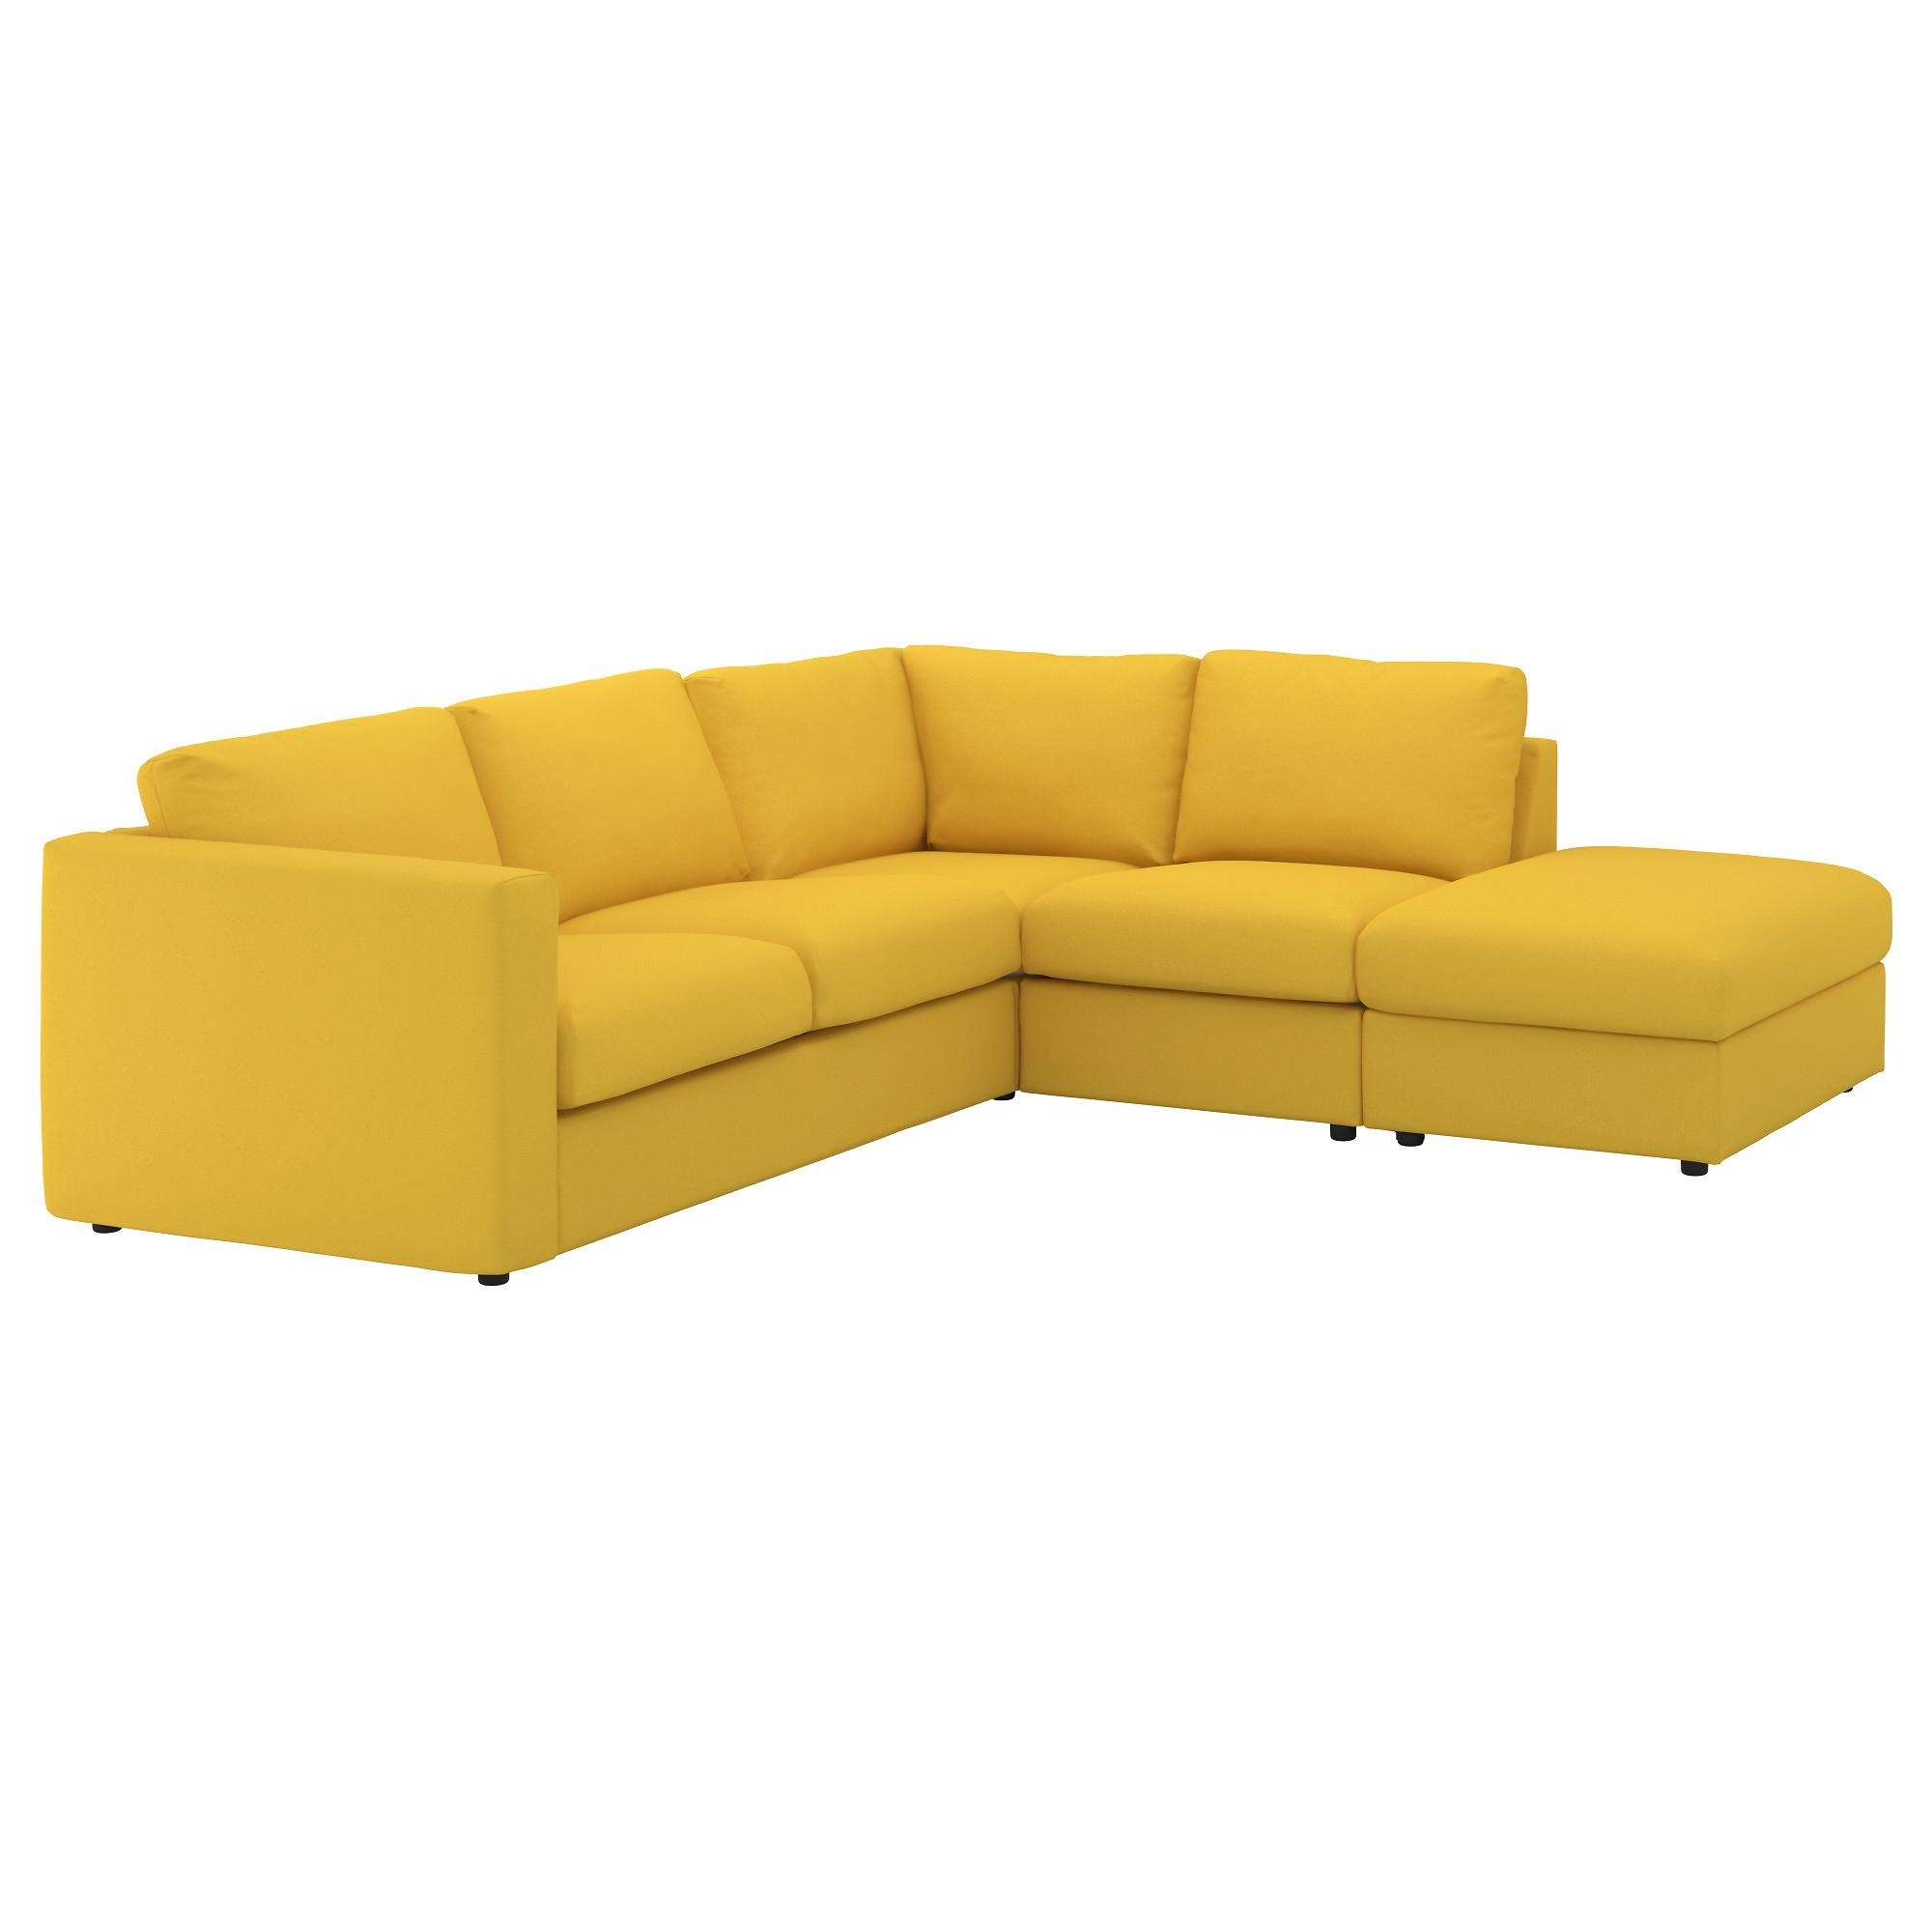 Vimle Corner Sofa, 4-Seat With Open End/gräsbo Golden-Yellow - Ikea within Corner Sofas